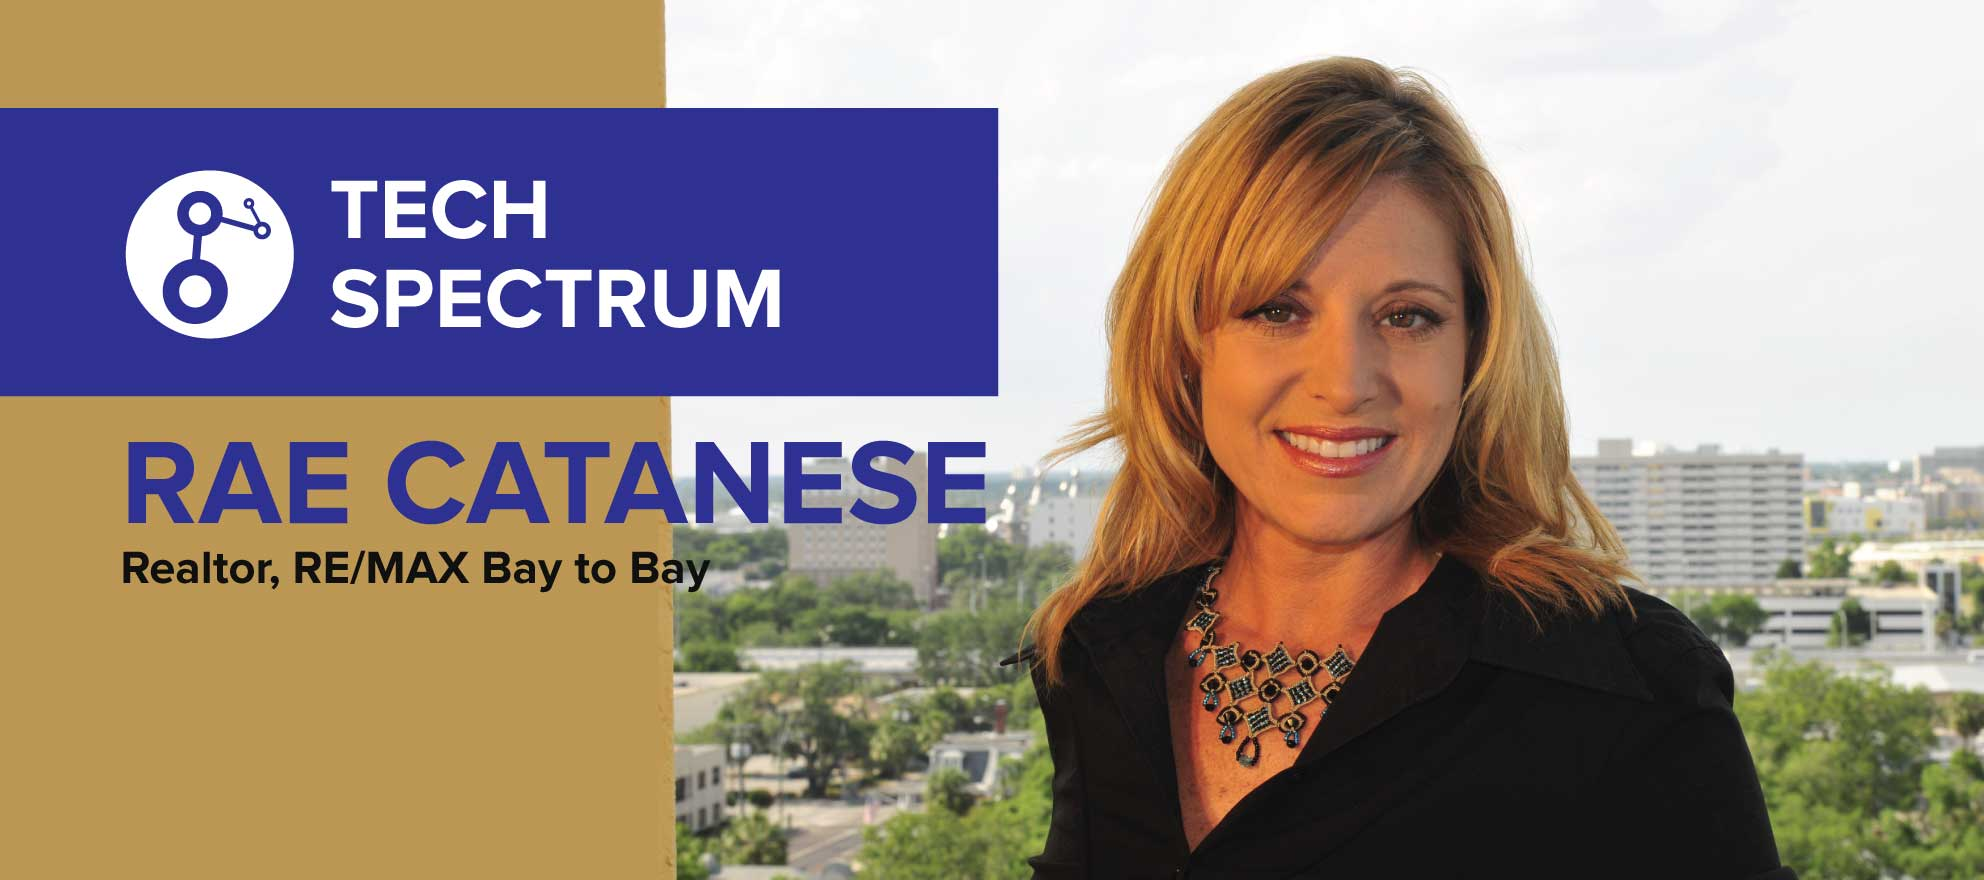 Rae Catanese: '80 percent of my leads come from my real estate blog'